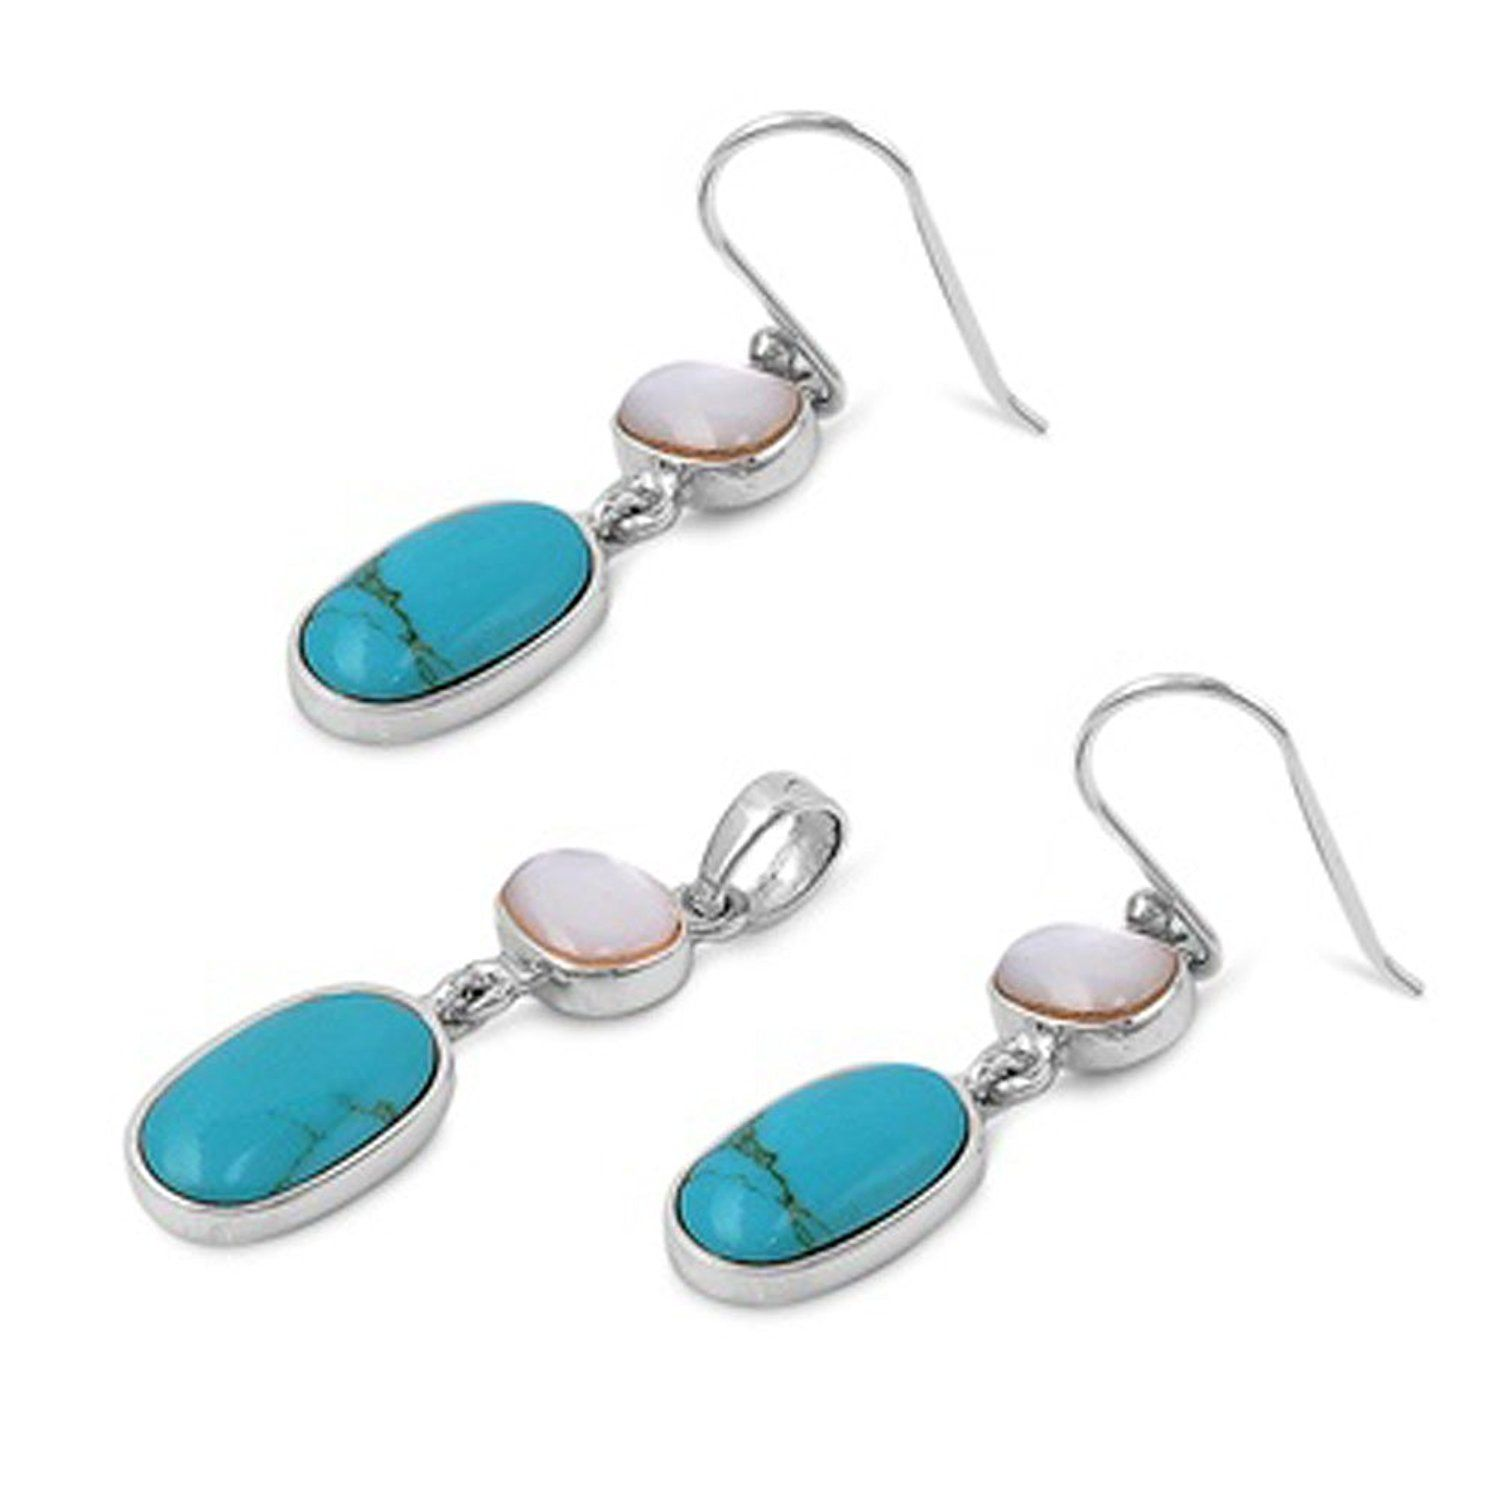 Oval hanging earrings simulated turquoise simulated mother of pearl